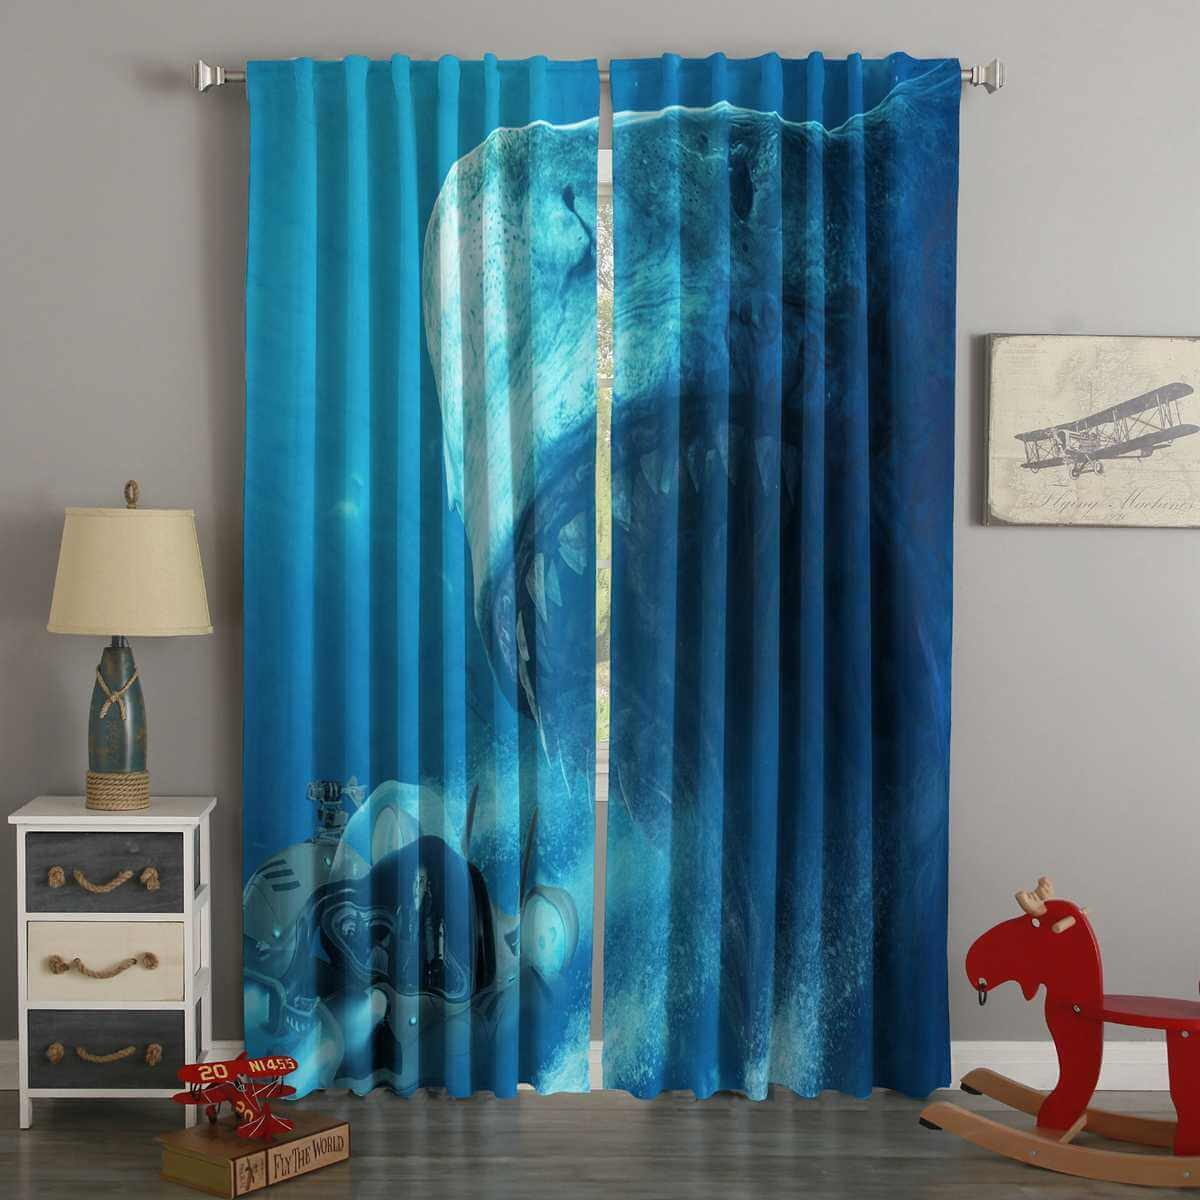 3D Printed The Meg Style Custom Living Room Curtains